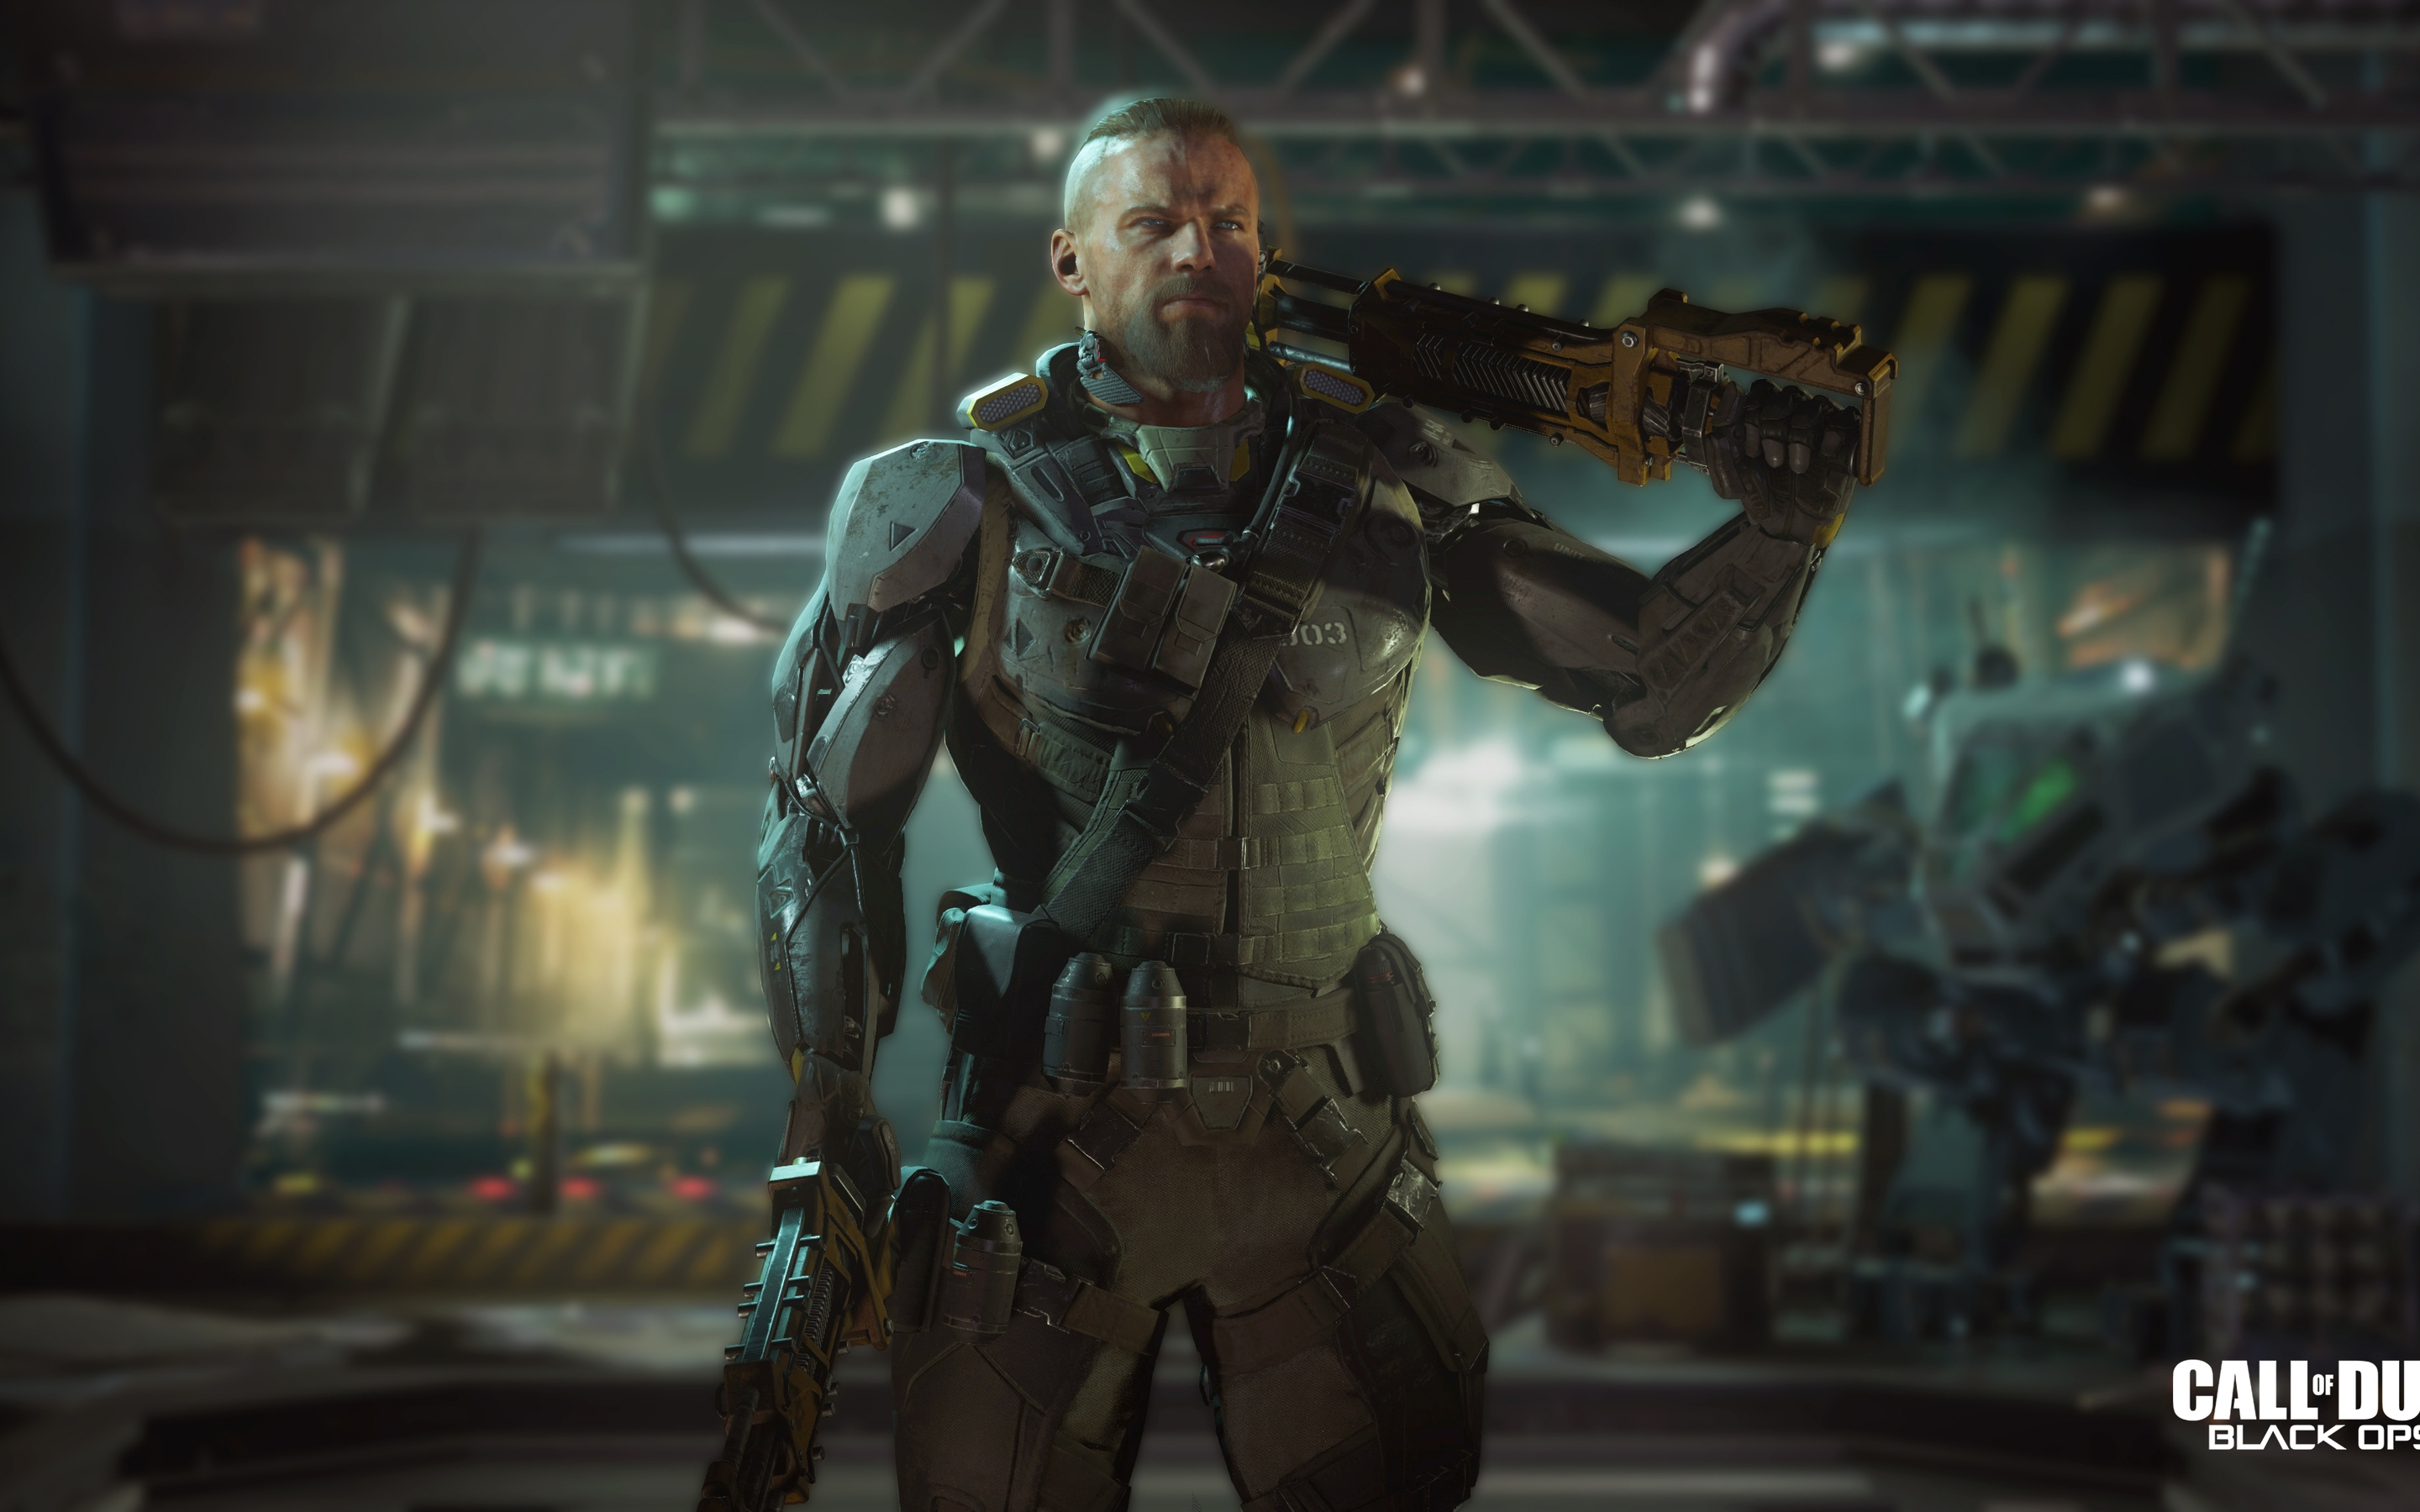 Call of Duty Black Ops 3 Specialist